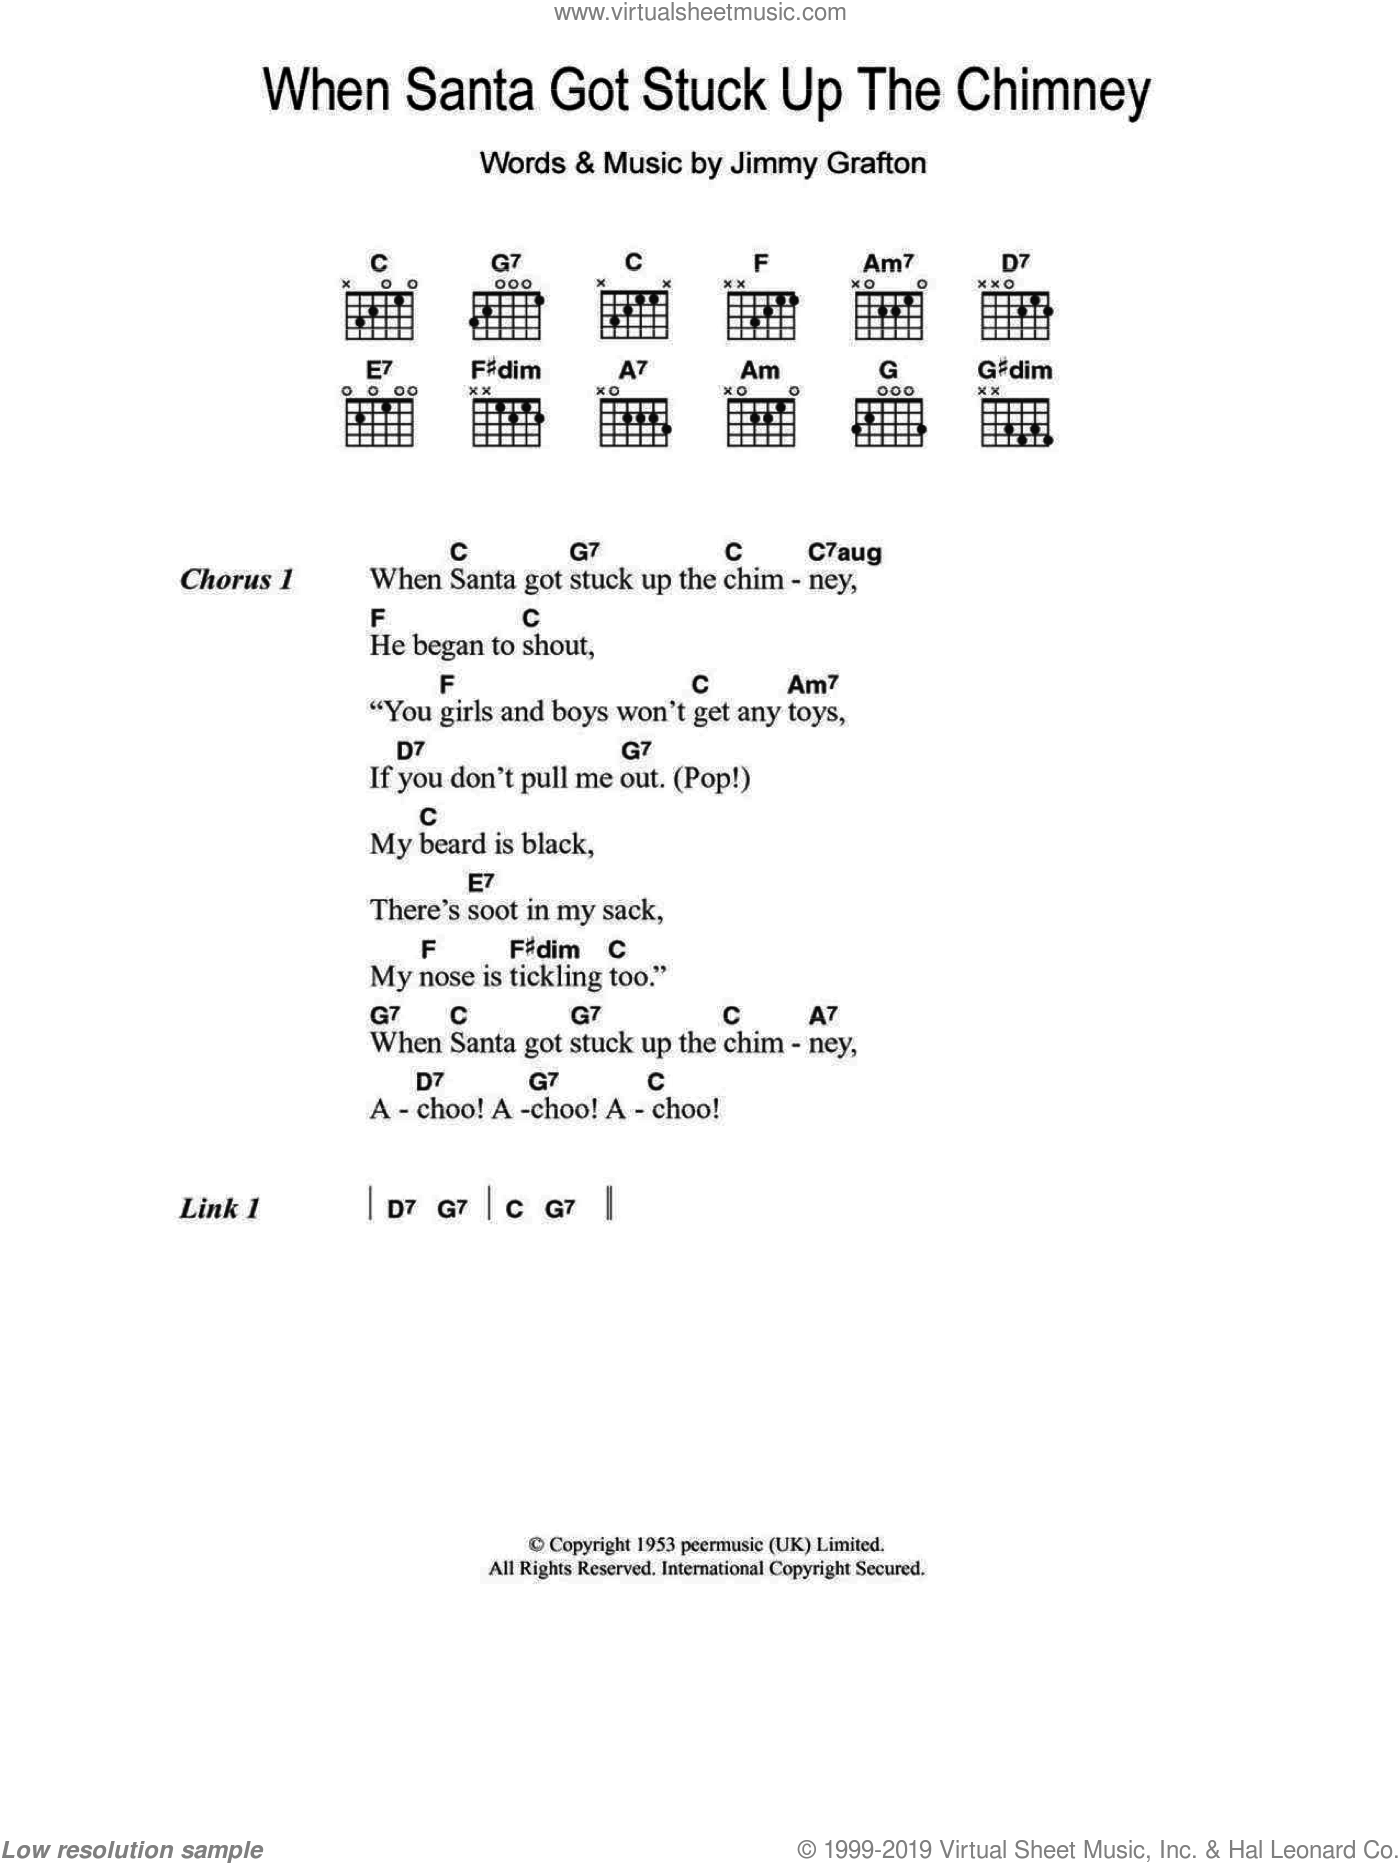 When Santa Got Stuck Up The Chimney sheet music for guitar (chords) by Jimmy Grafton